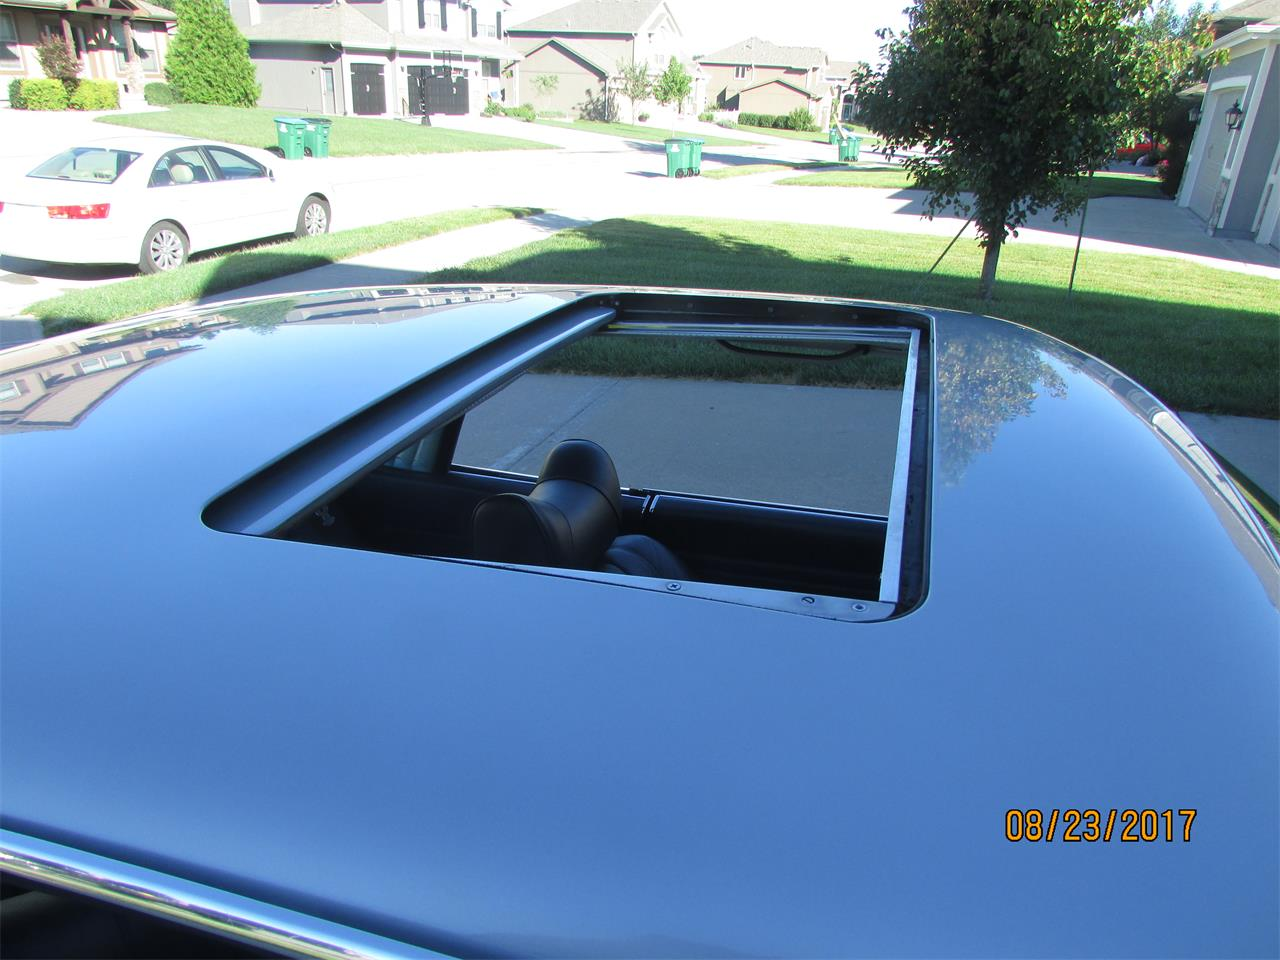 Large Picture of '79 SL-Class located in Missouri Offered by a Private Seller - M6OQ